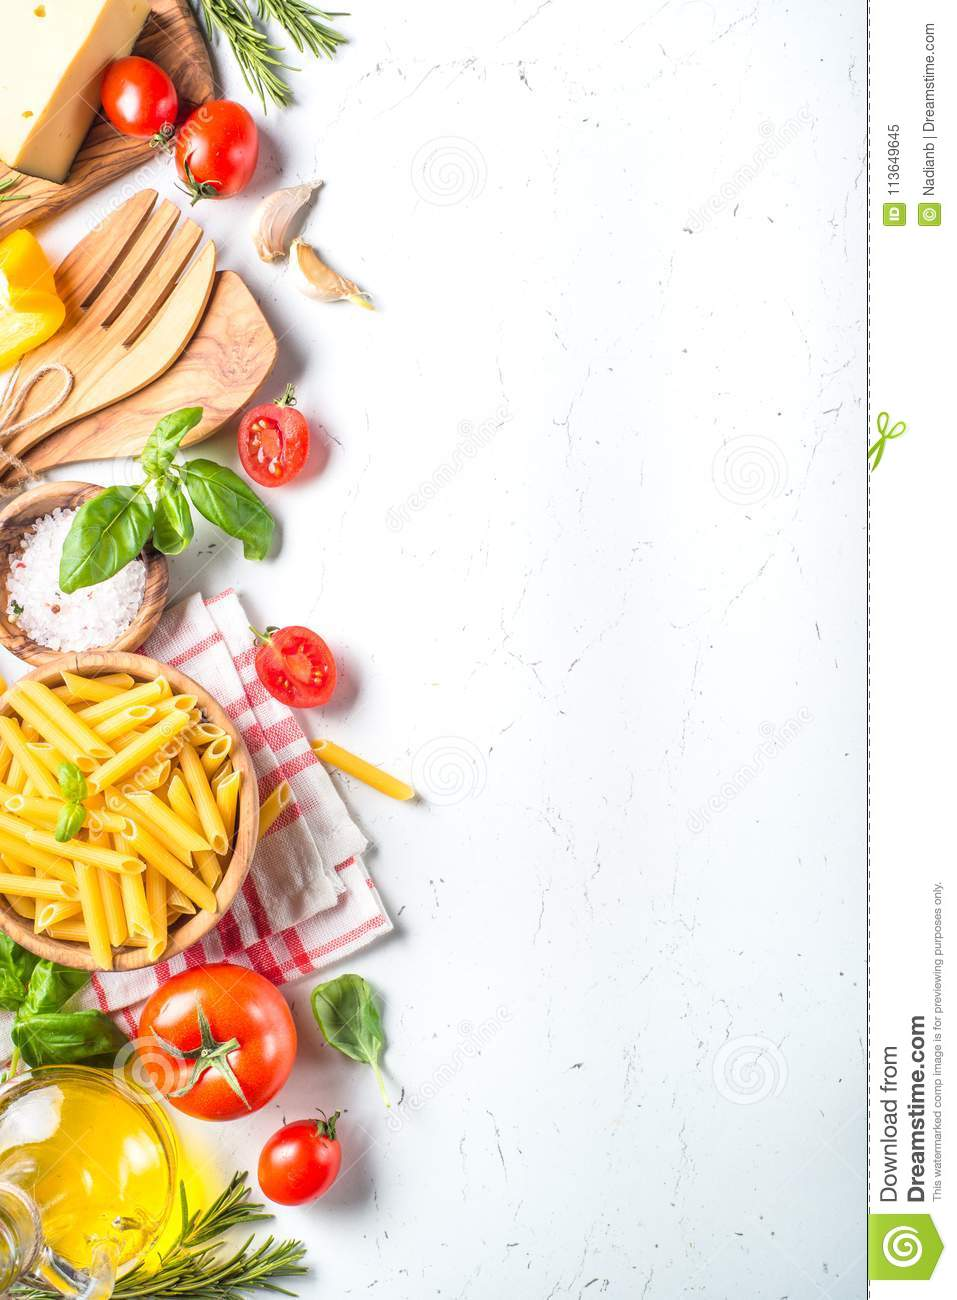 Italian Food Background On White Top View. Stock Image - Image of ...